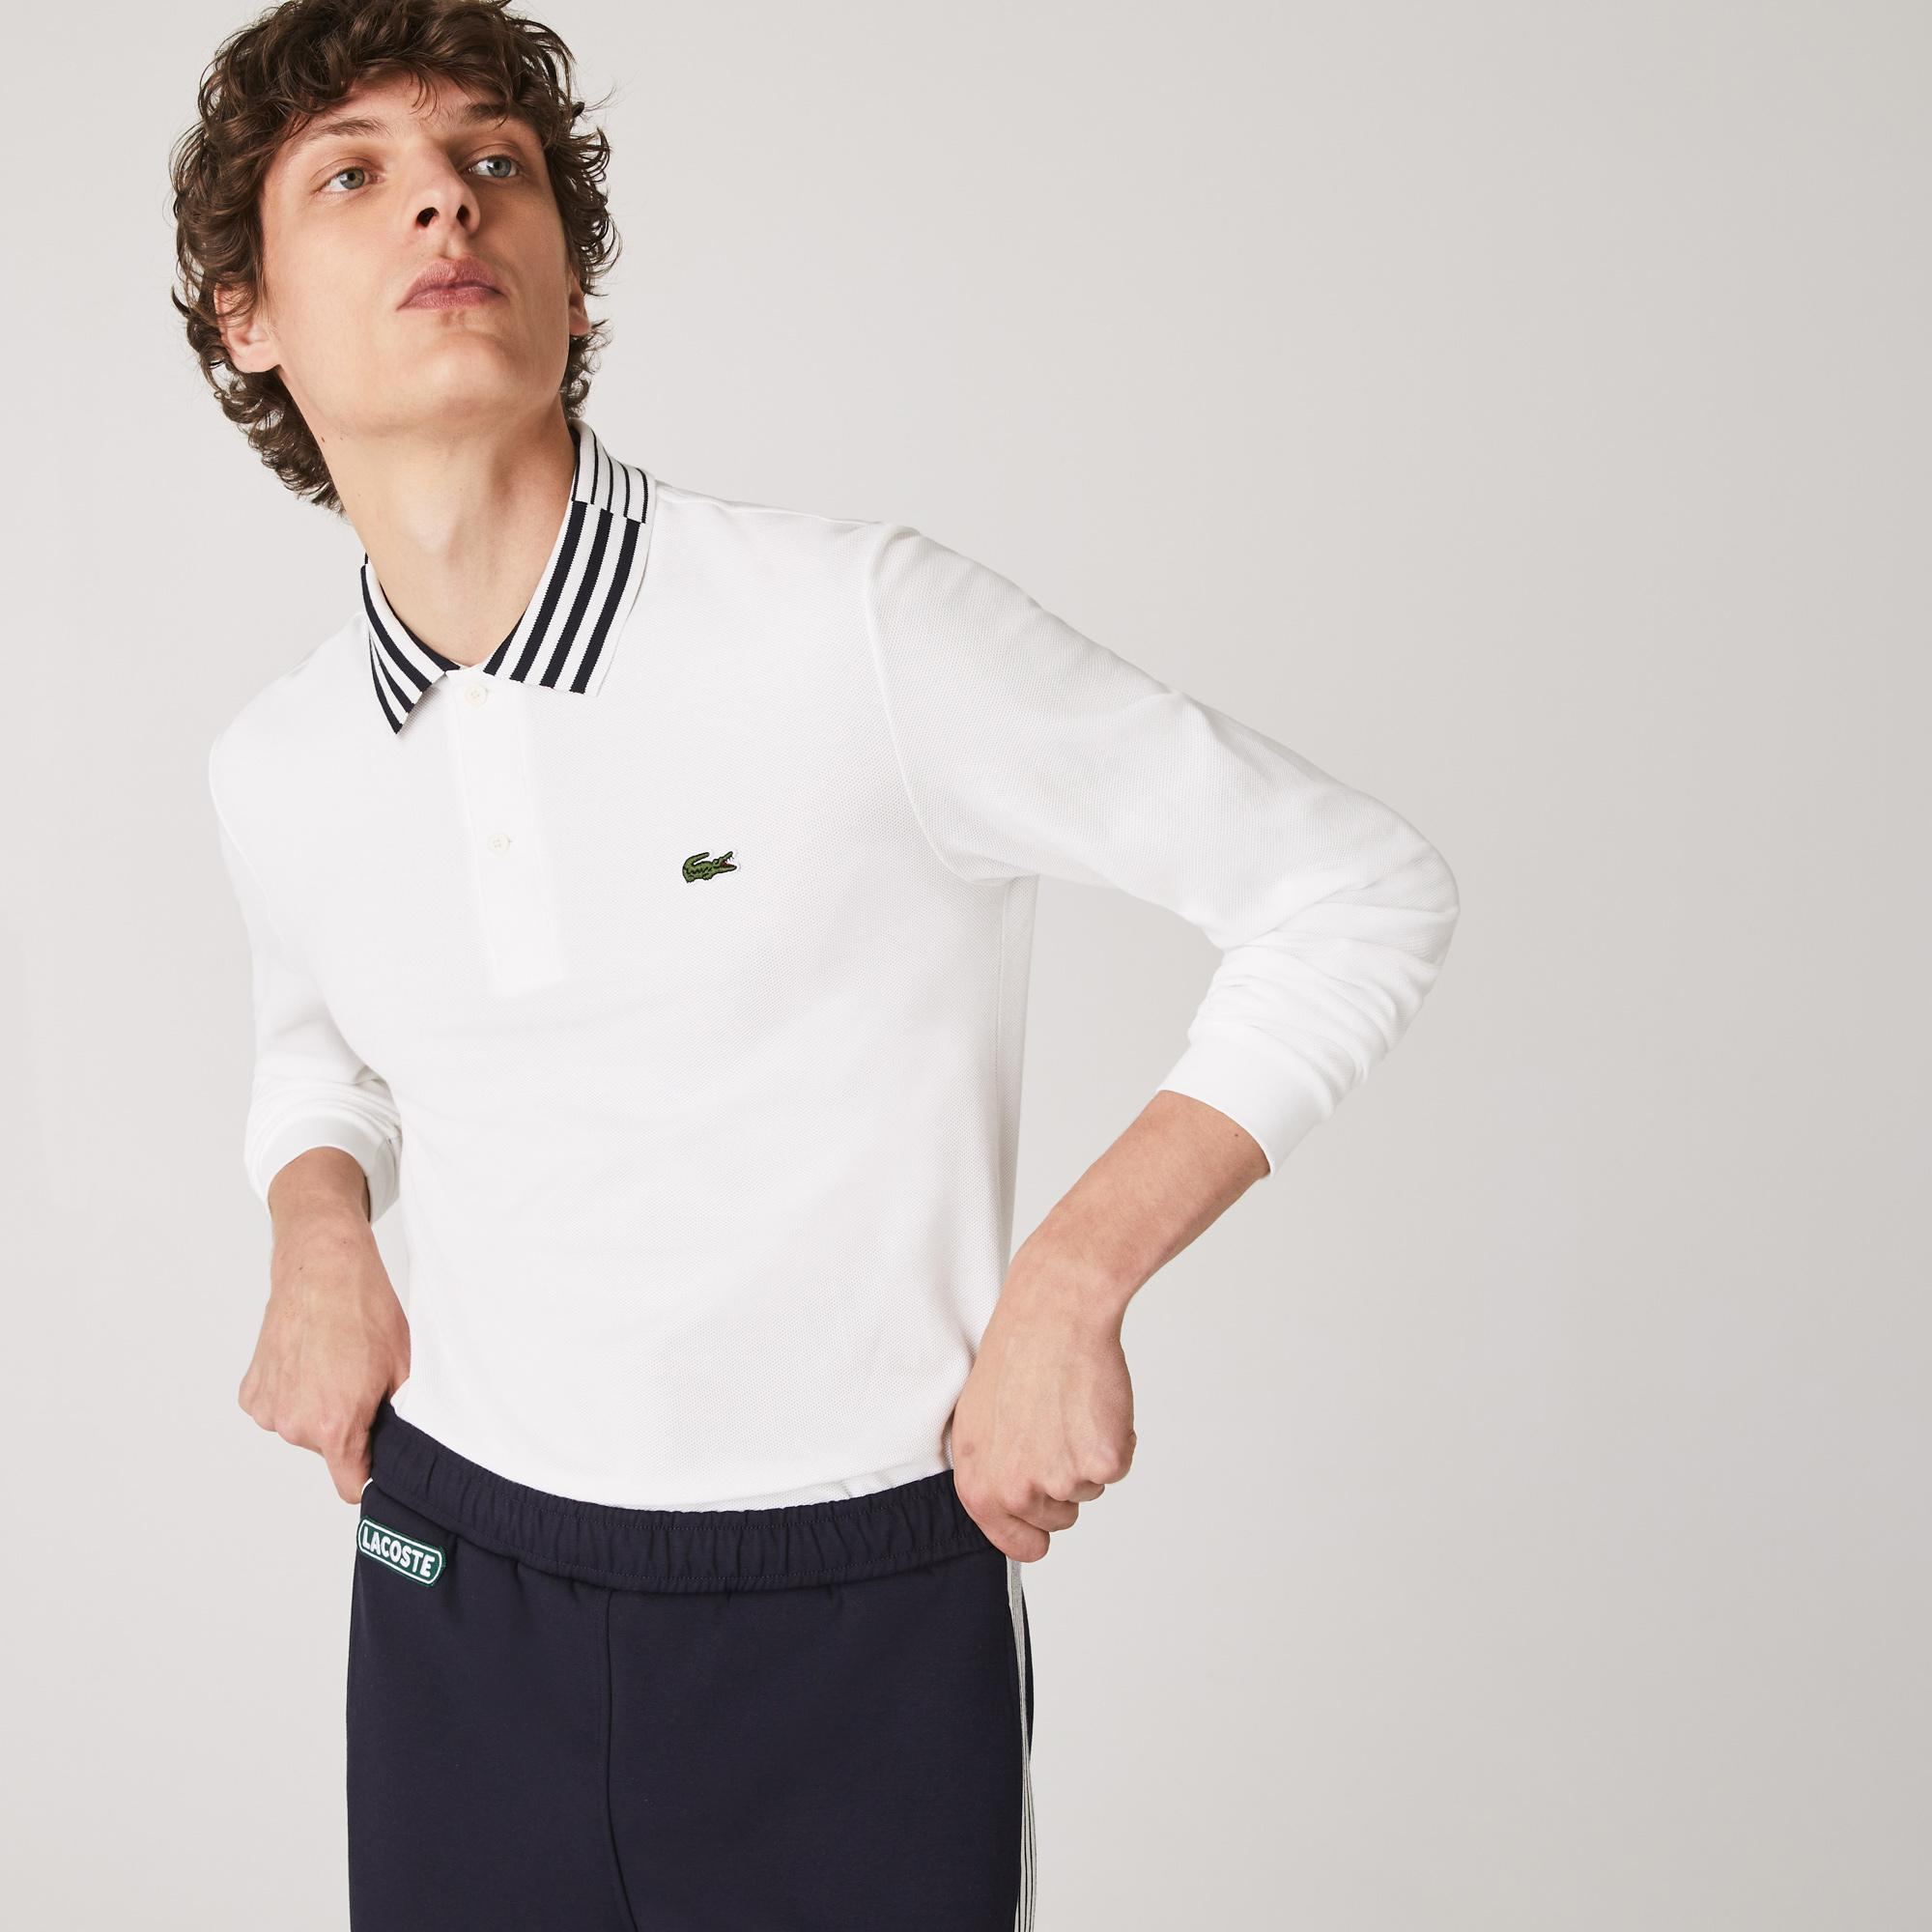 Lacoste Men's Slim Fit Heritage Cotton Polo Shirt